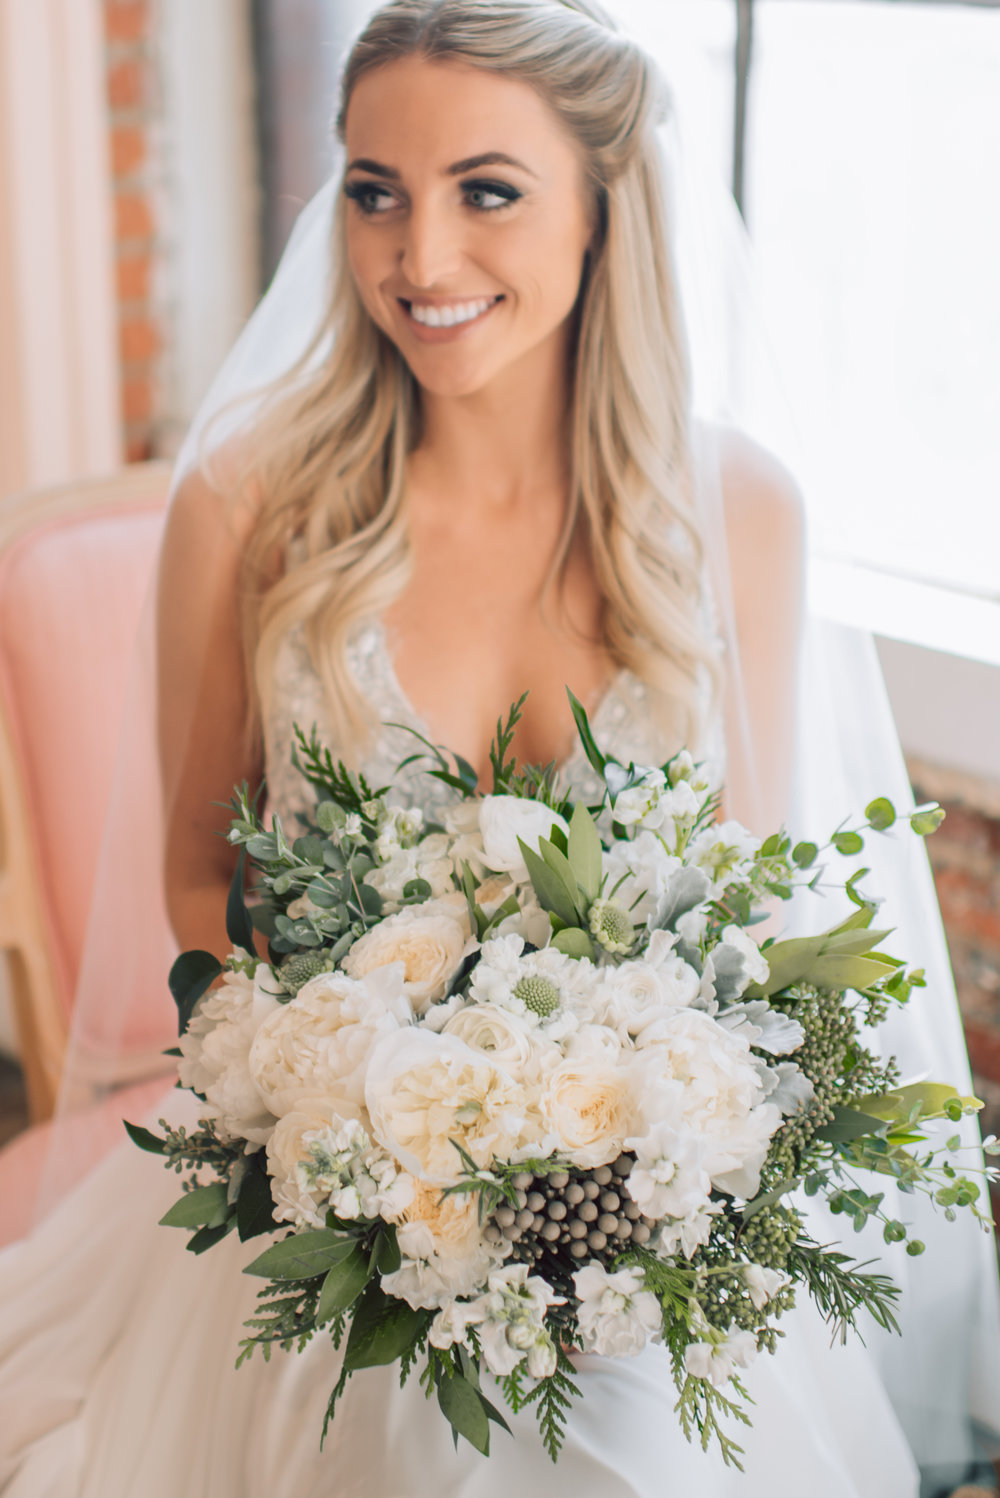 Large Textured Garden Bouquet  Style: Textured greenery, romantic Details: peonies, garden roses, scabiosa, brunia berries, gunni eucalyptus, bay leaf, seeded euc, ranunculus, winter greenery   {Photo courtesy of  Sara Rieth Photography }